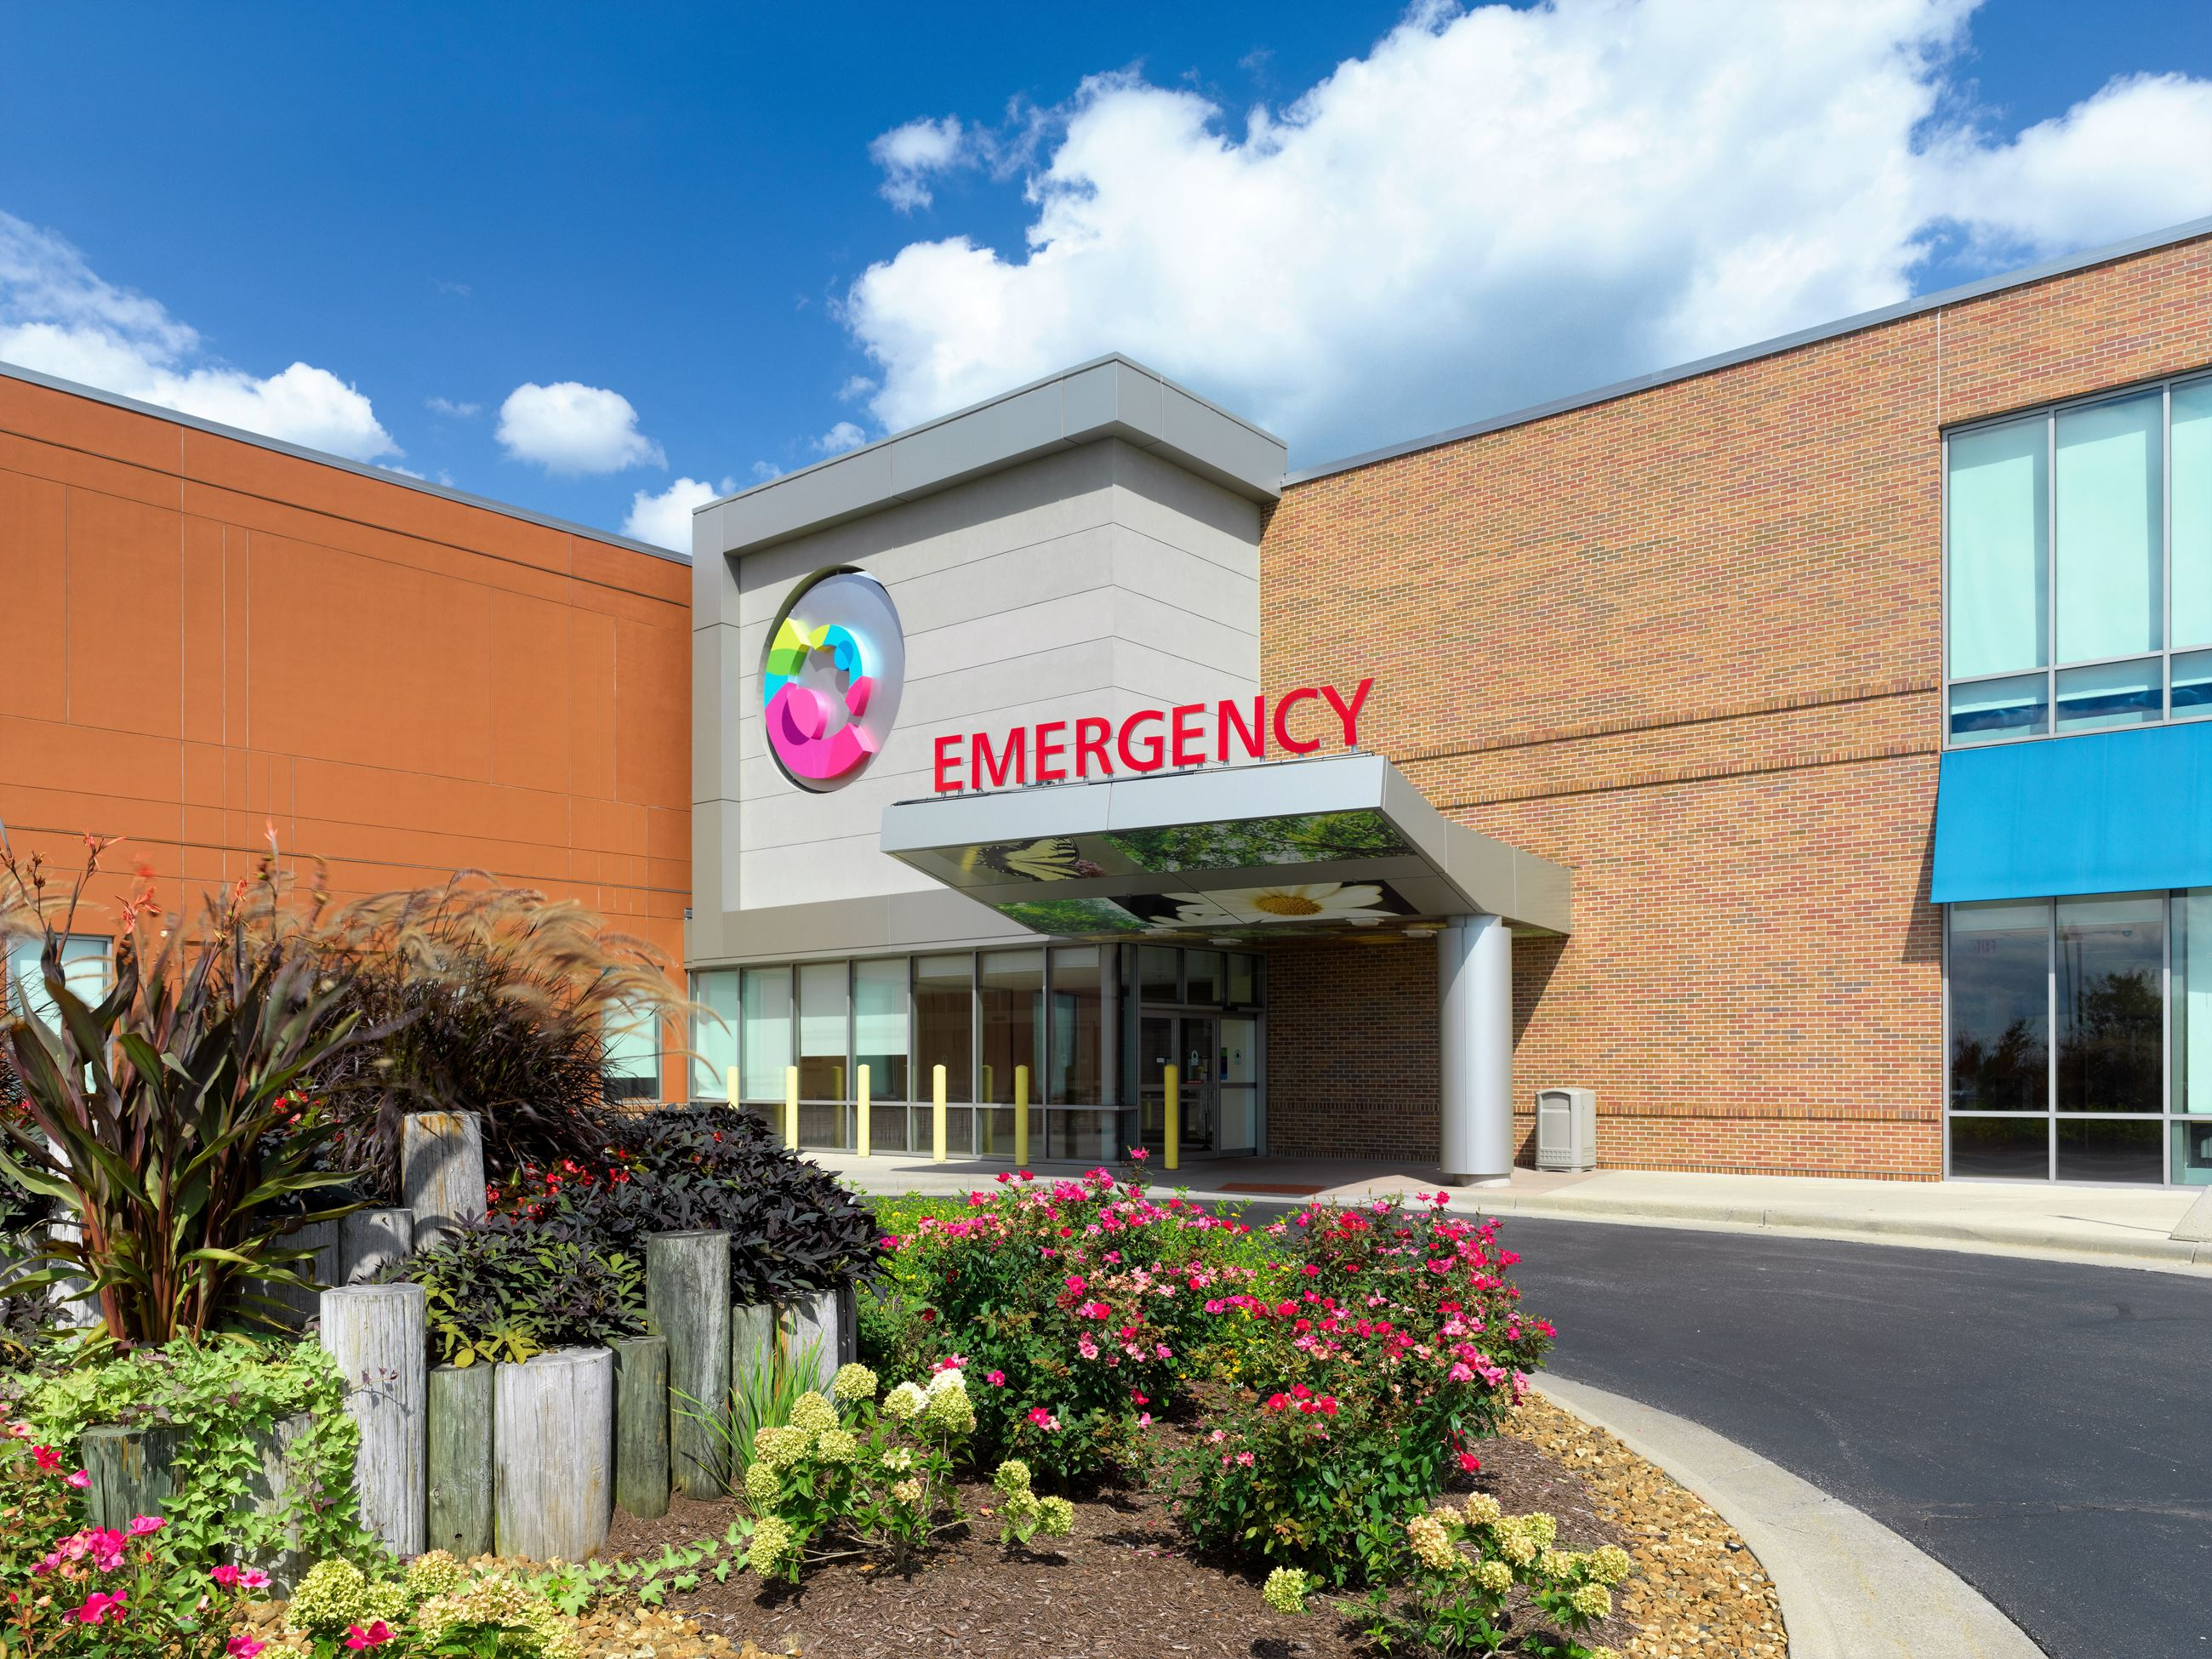 Cincinnati Children's Hospital - Liberty Campus